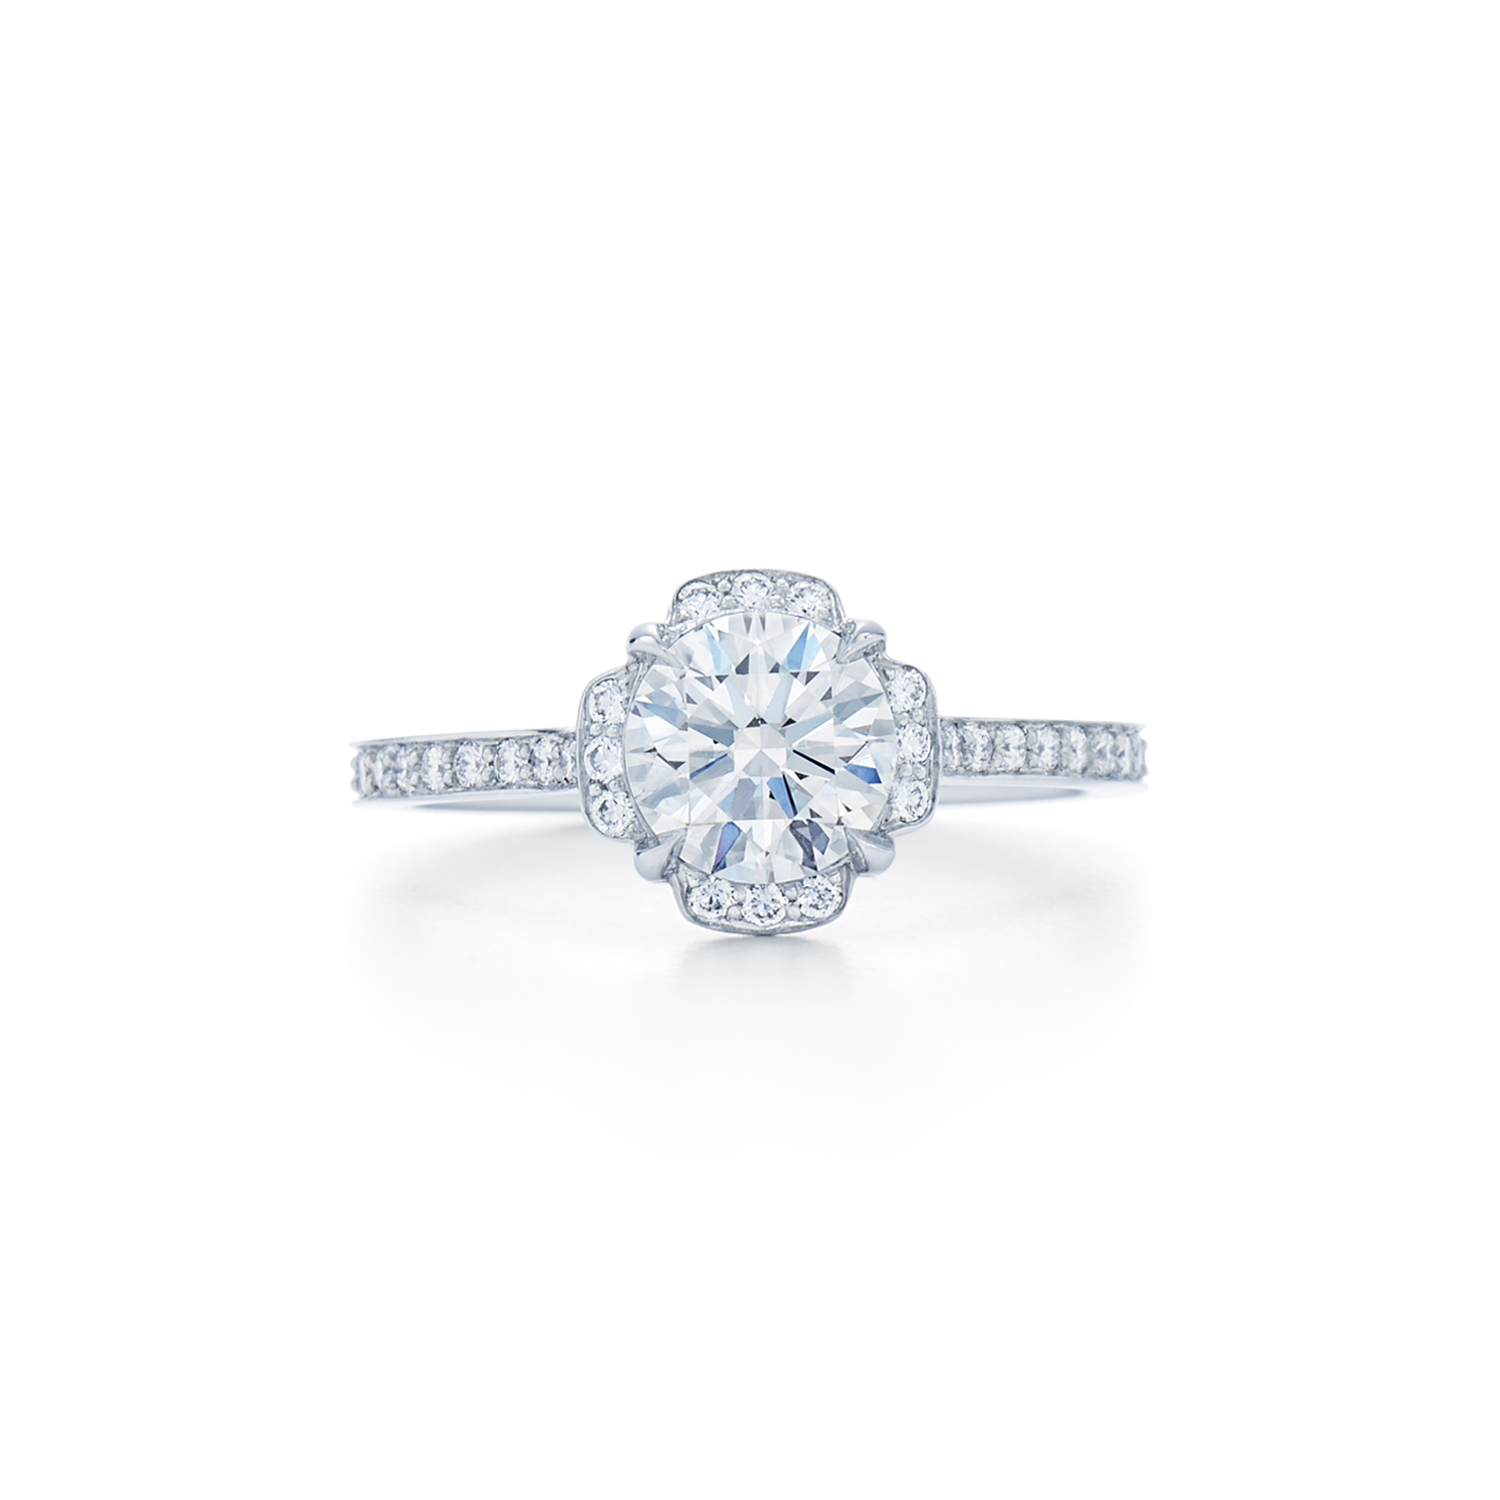 setting cushion diamond style solitaire jewelry gold in kwiat rings cut engagement ring the product rose